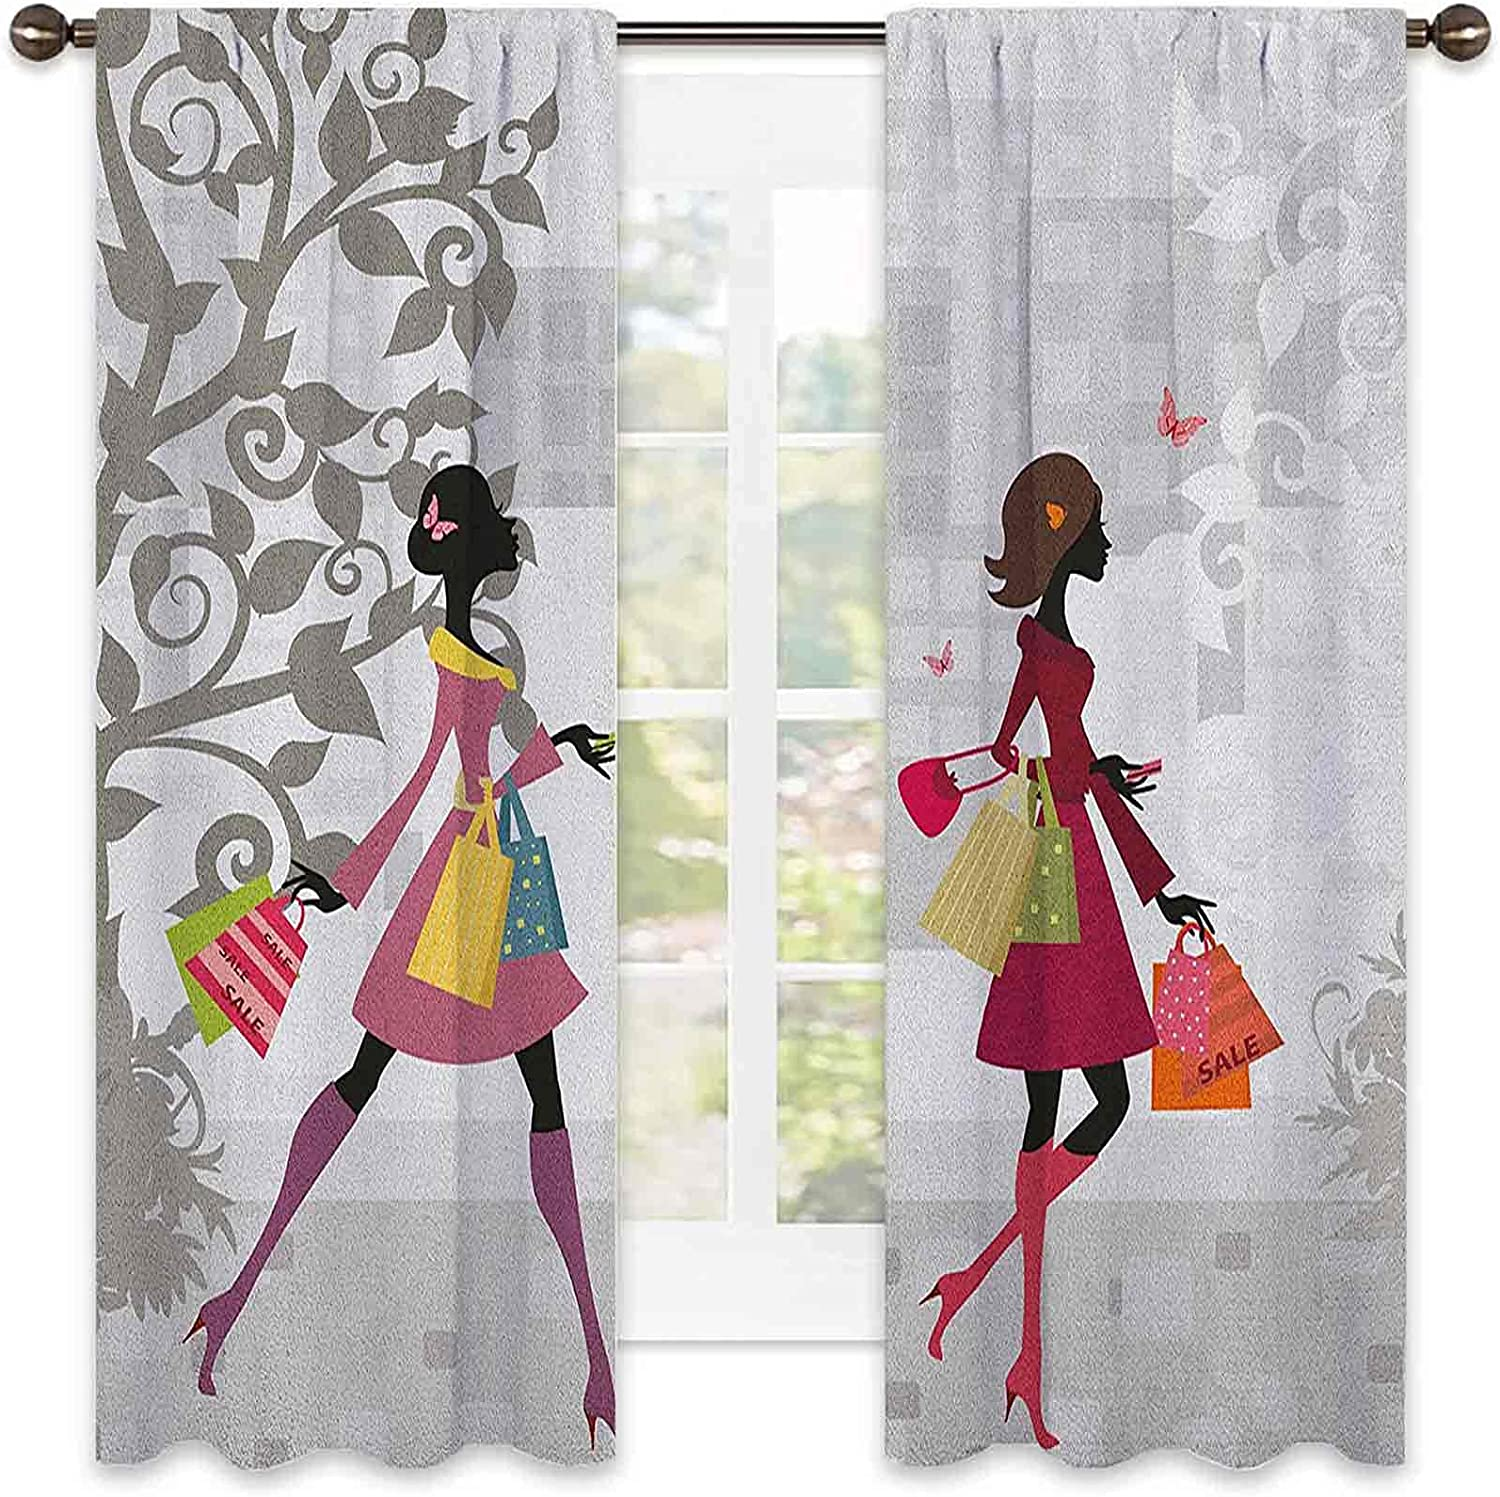 Teen Room Max 61% OFF Blackout Curtain Baltimore Mall Retro City in Fashion Shopping Women